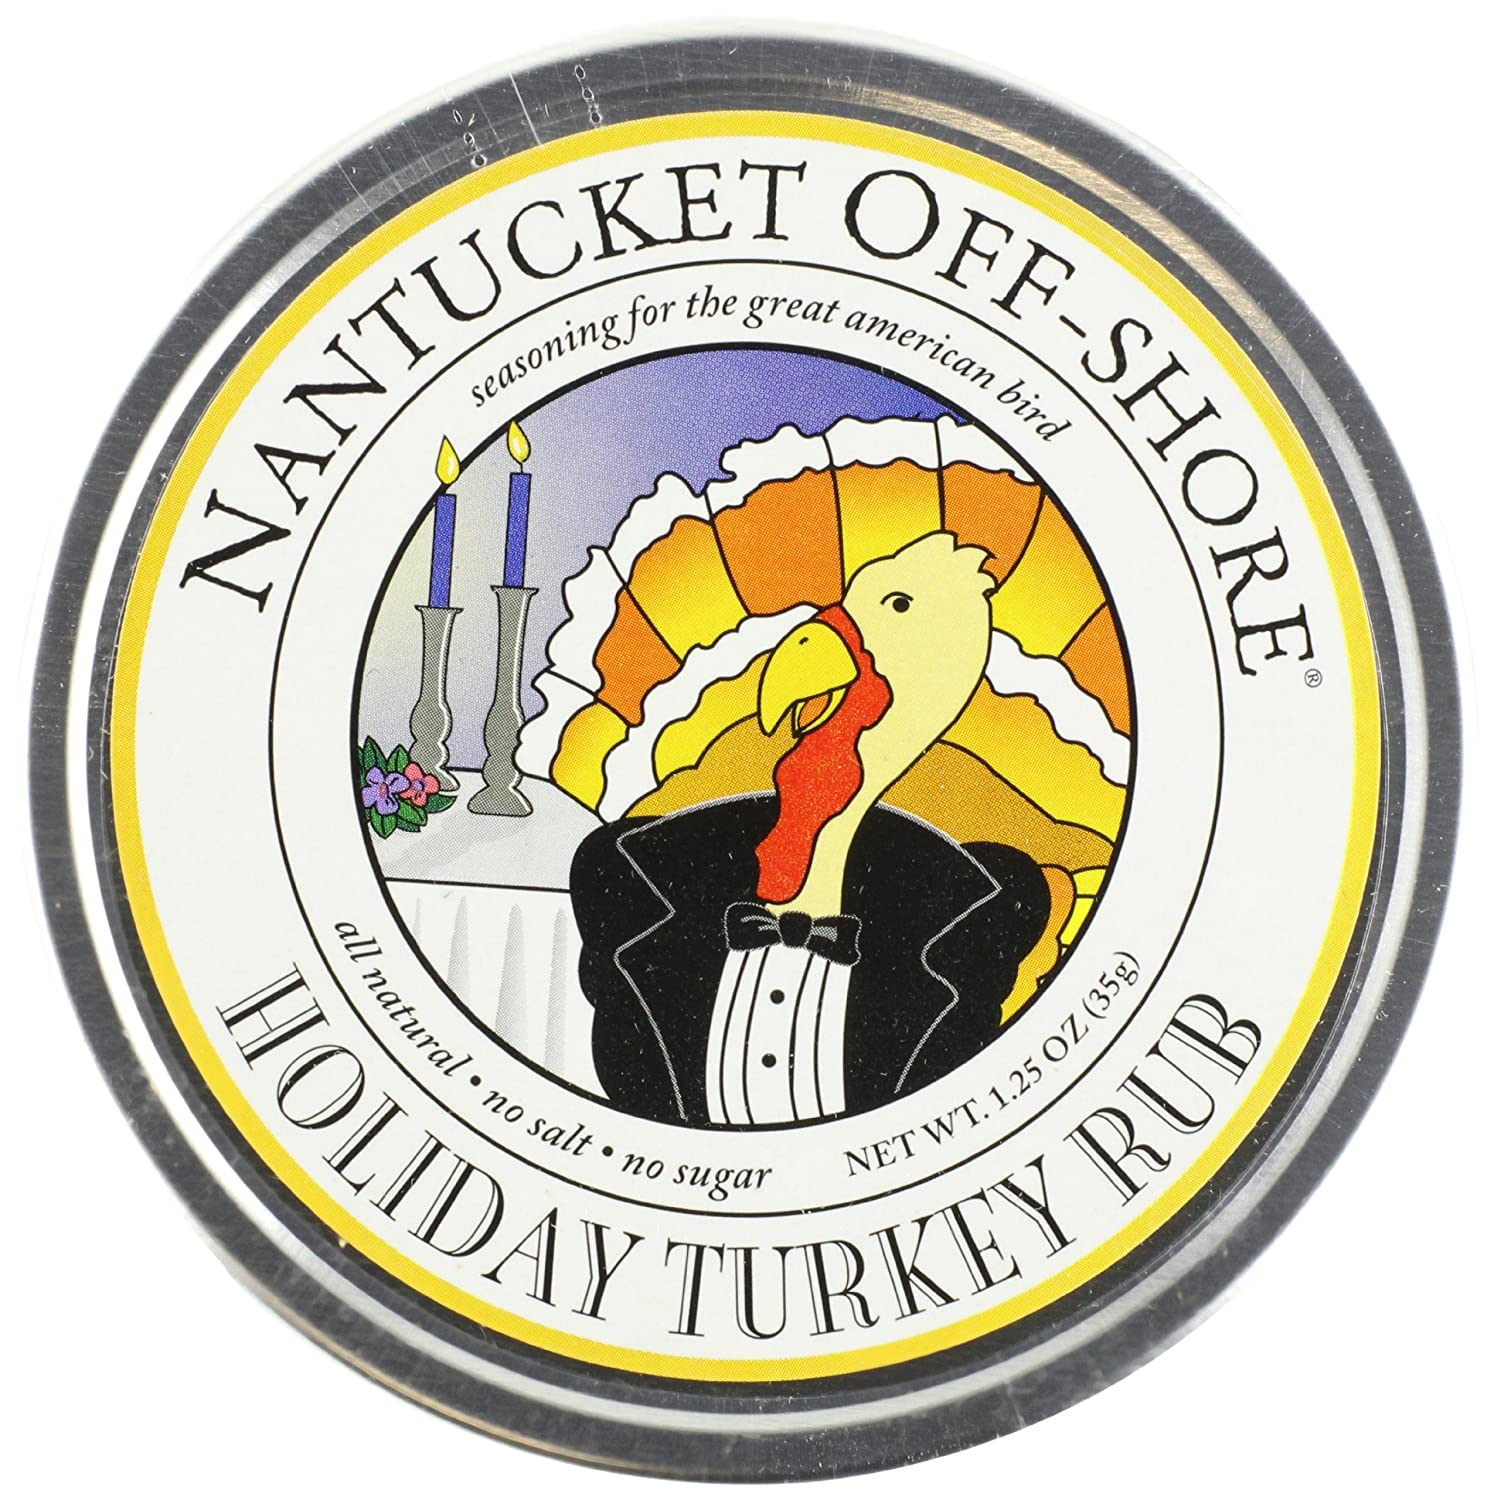 The New Fuss About Nantucket Off Shore Holiday Turkey Rub